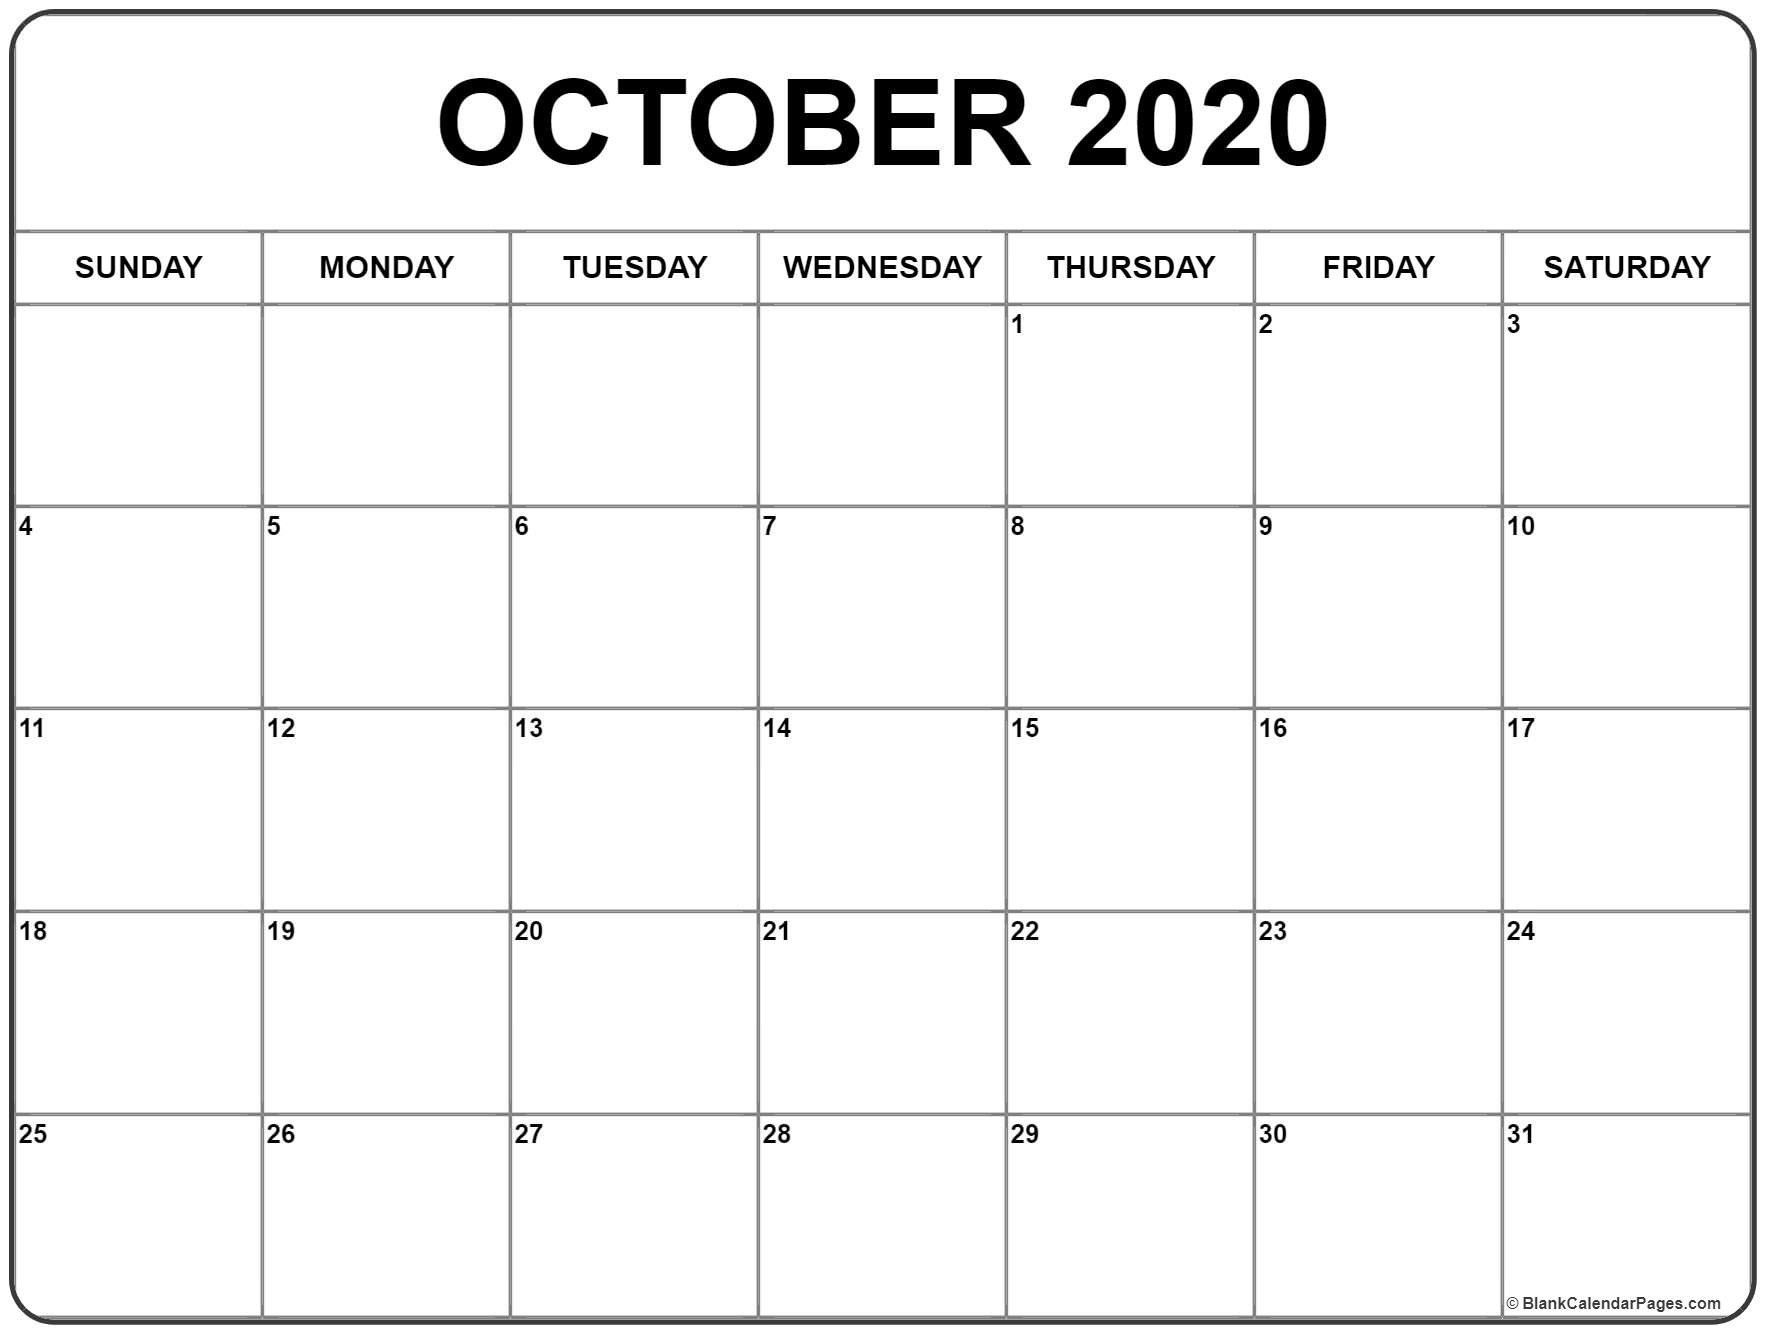 October 2020 Calendar   Free Printable Monthly Calendars inside Small Monthly Calendar Printable 2020 October